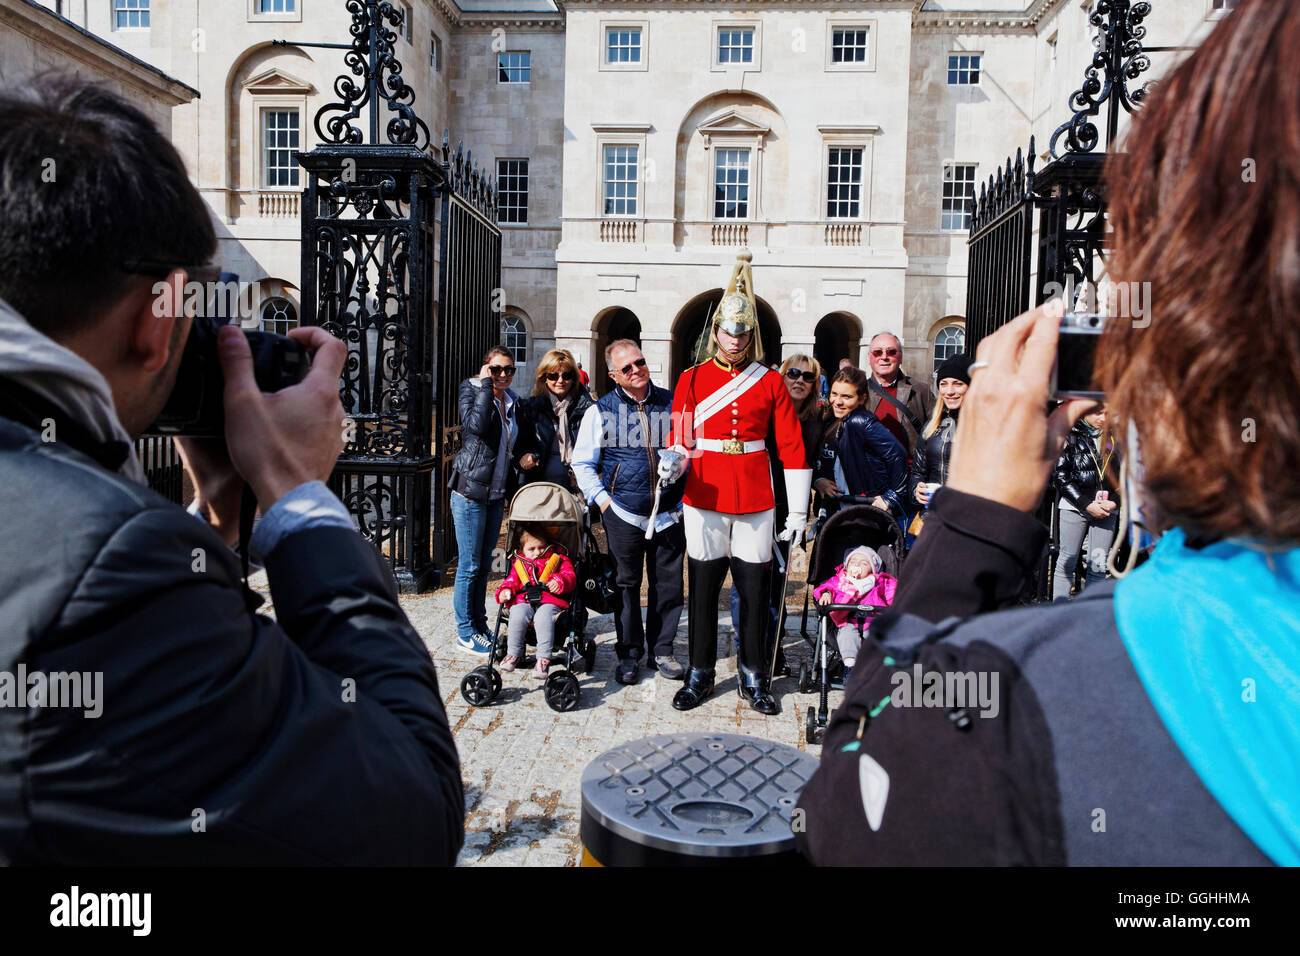 Garde à Horse Guards Parade, Whitehall, Westminster, Londres, Angleterre, Royaume-Uni Photo Stock